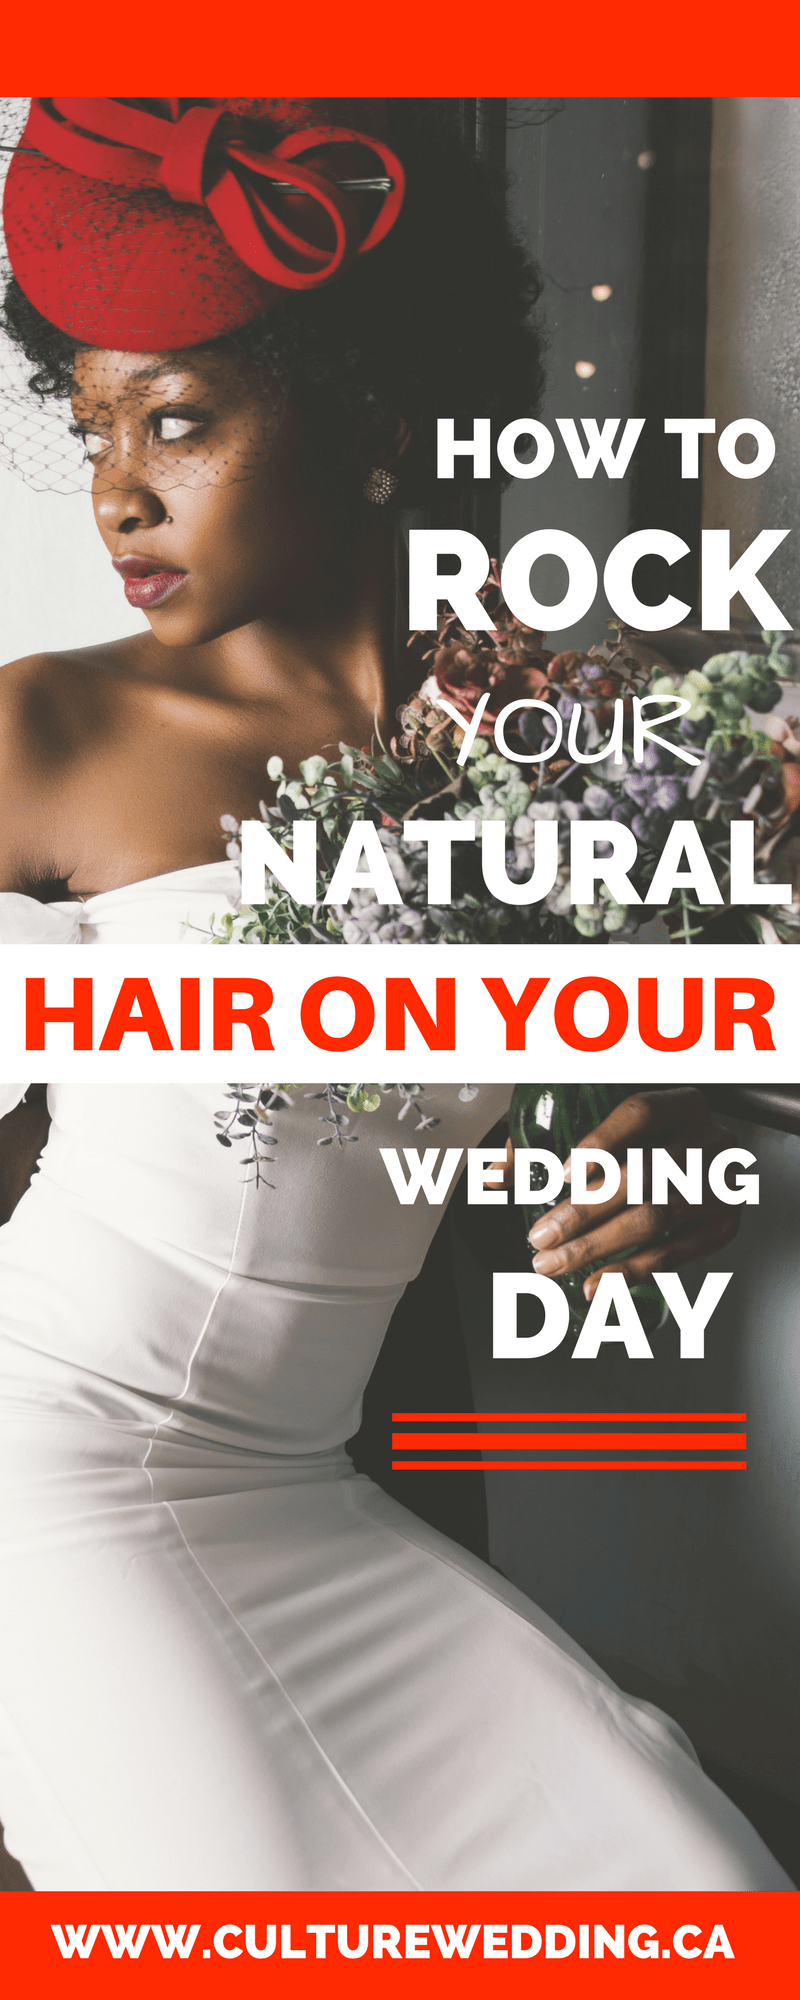 How to rock your natural hair on your wedding day